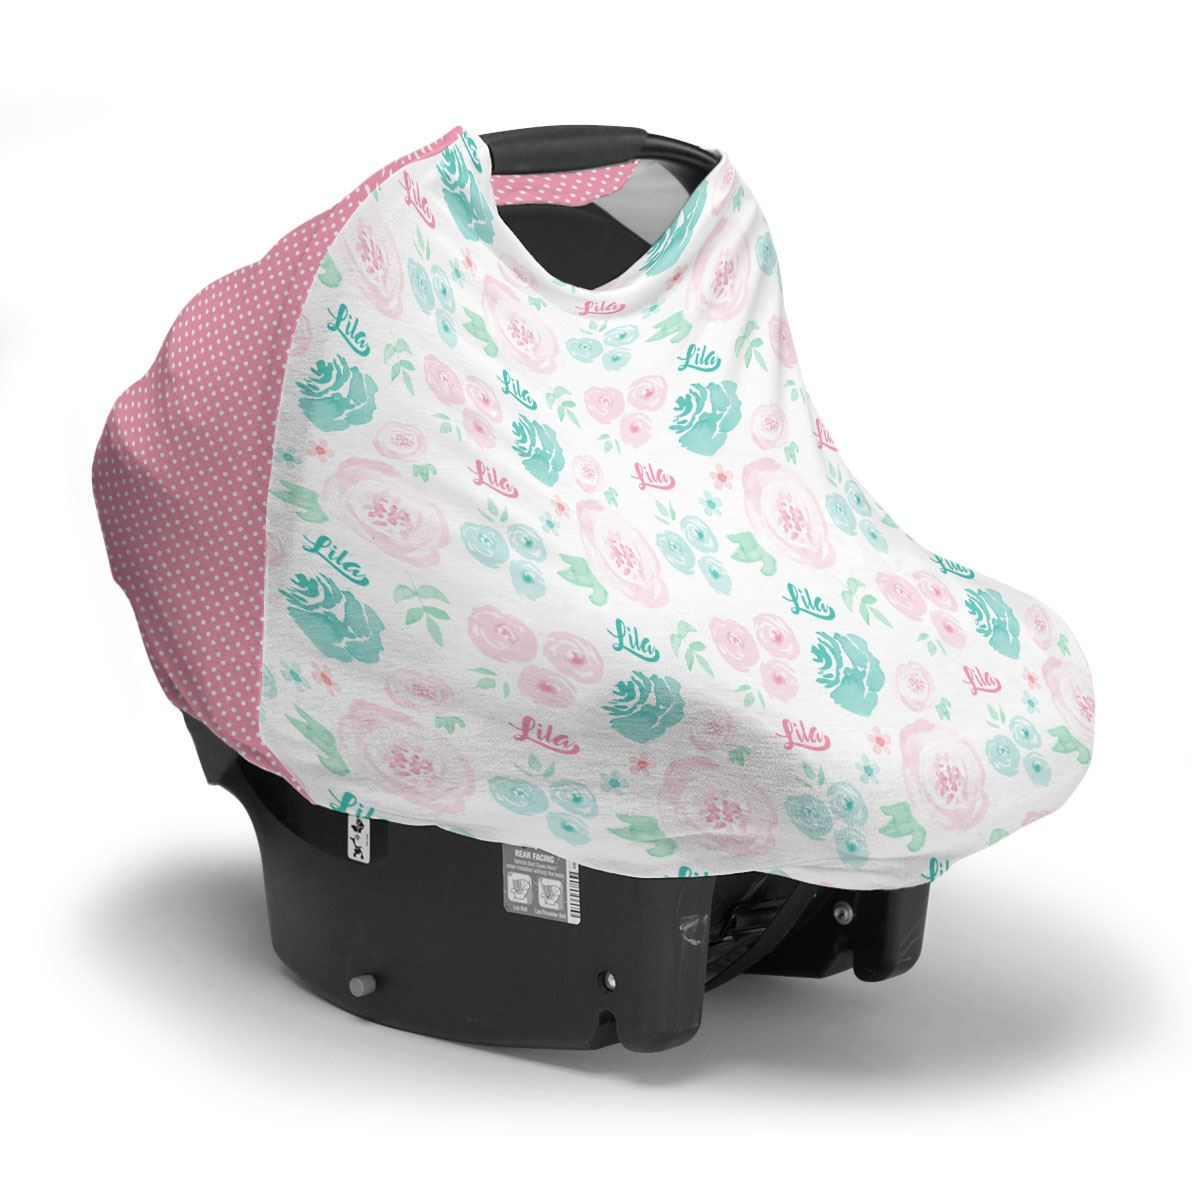 Lila's Summer Floral | Car Seat Cover (Multi-Use)